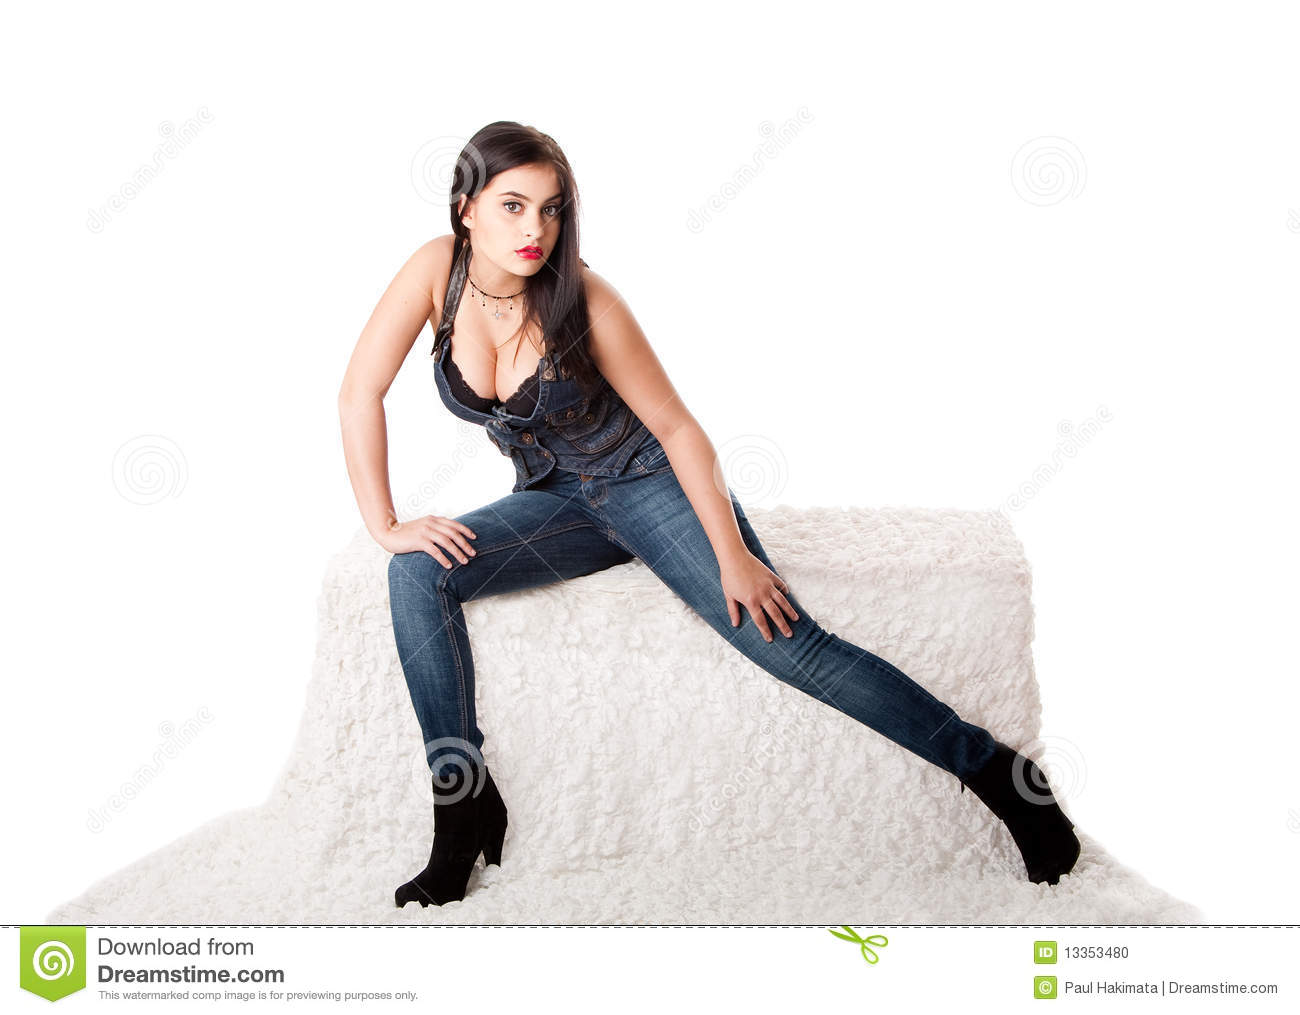 jeans hemd wenn brunett sexy boobs